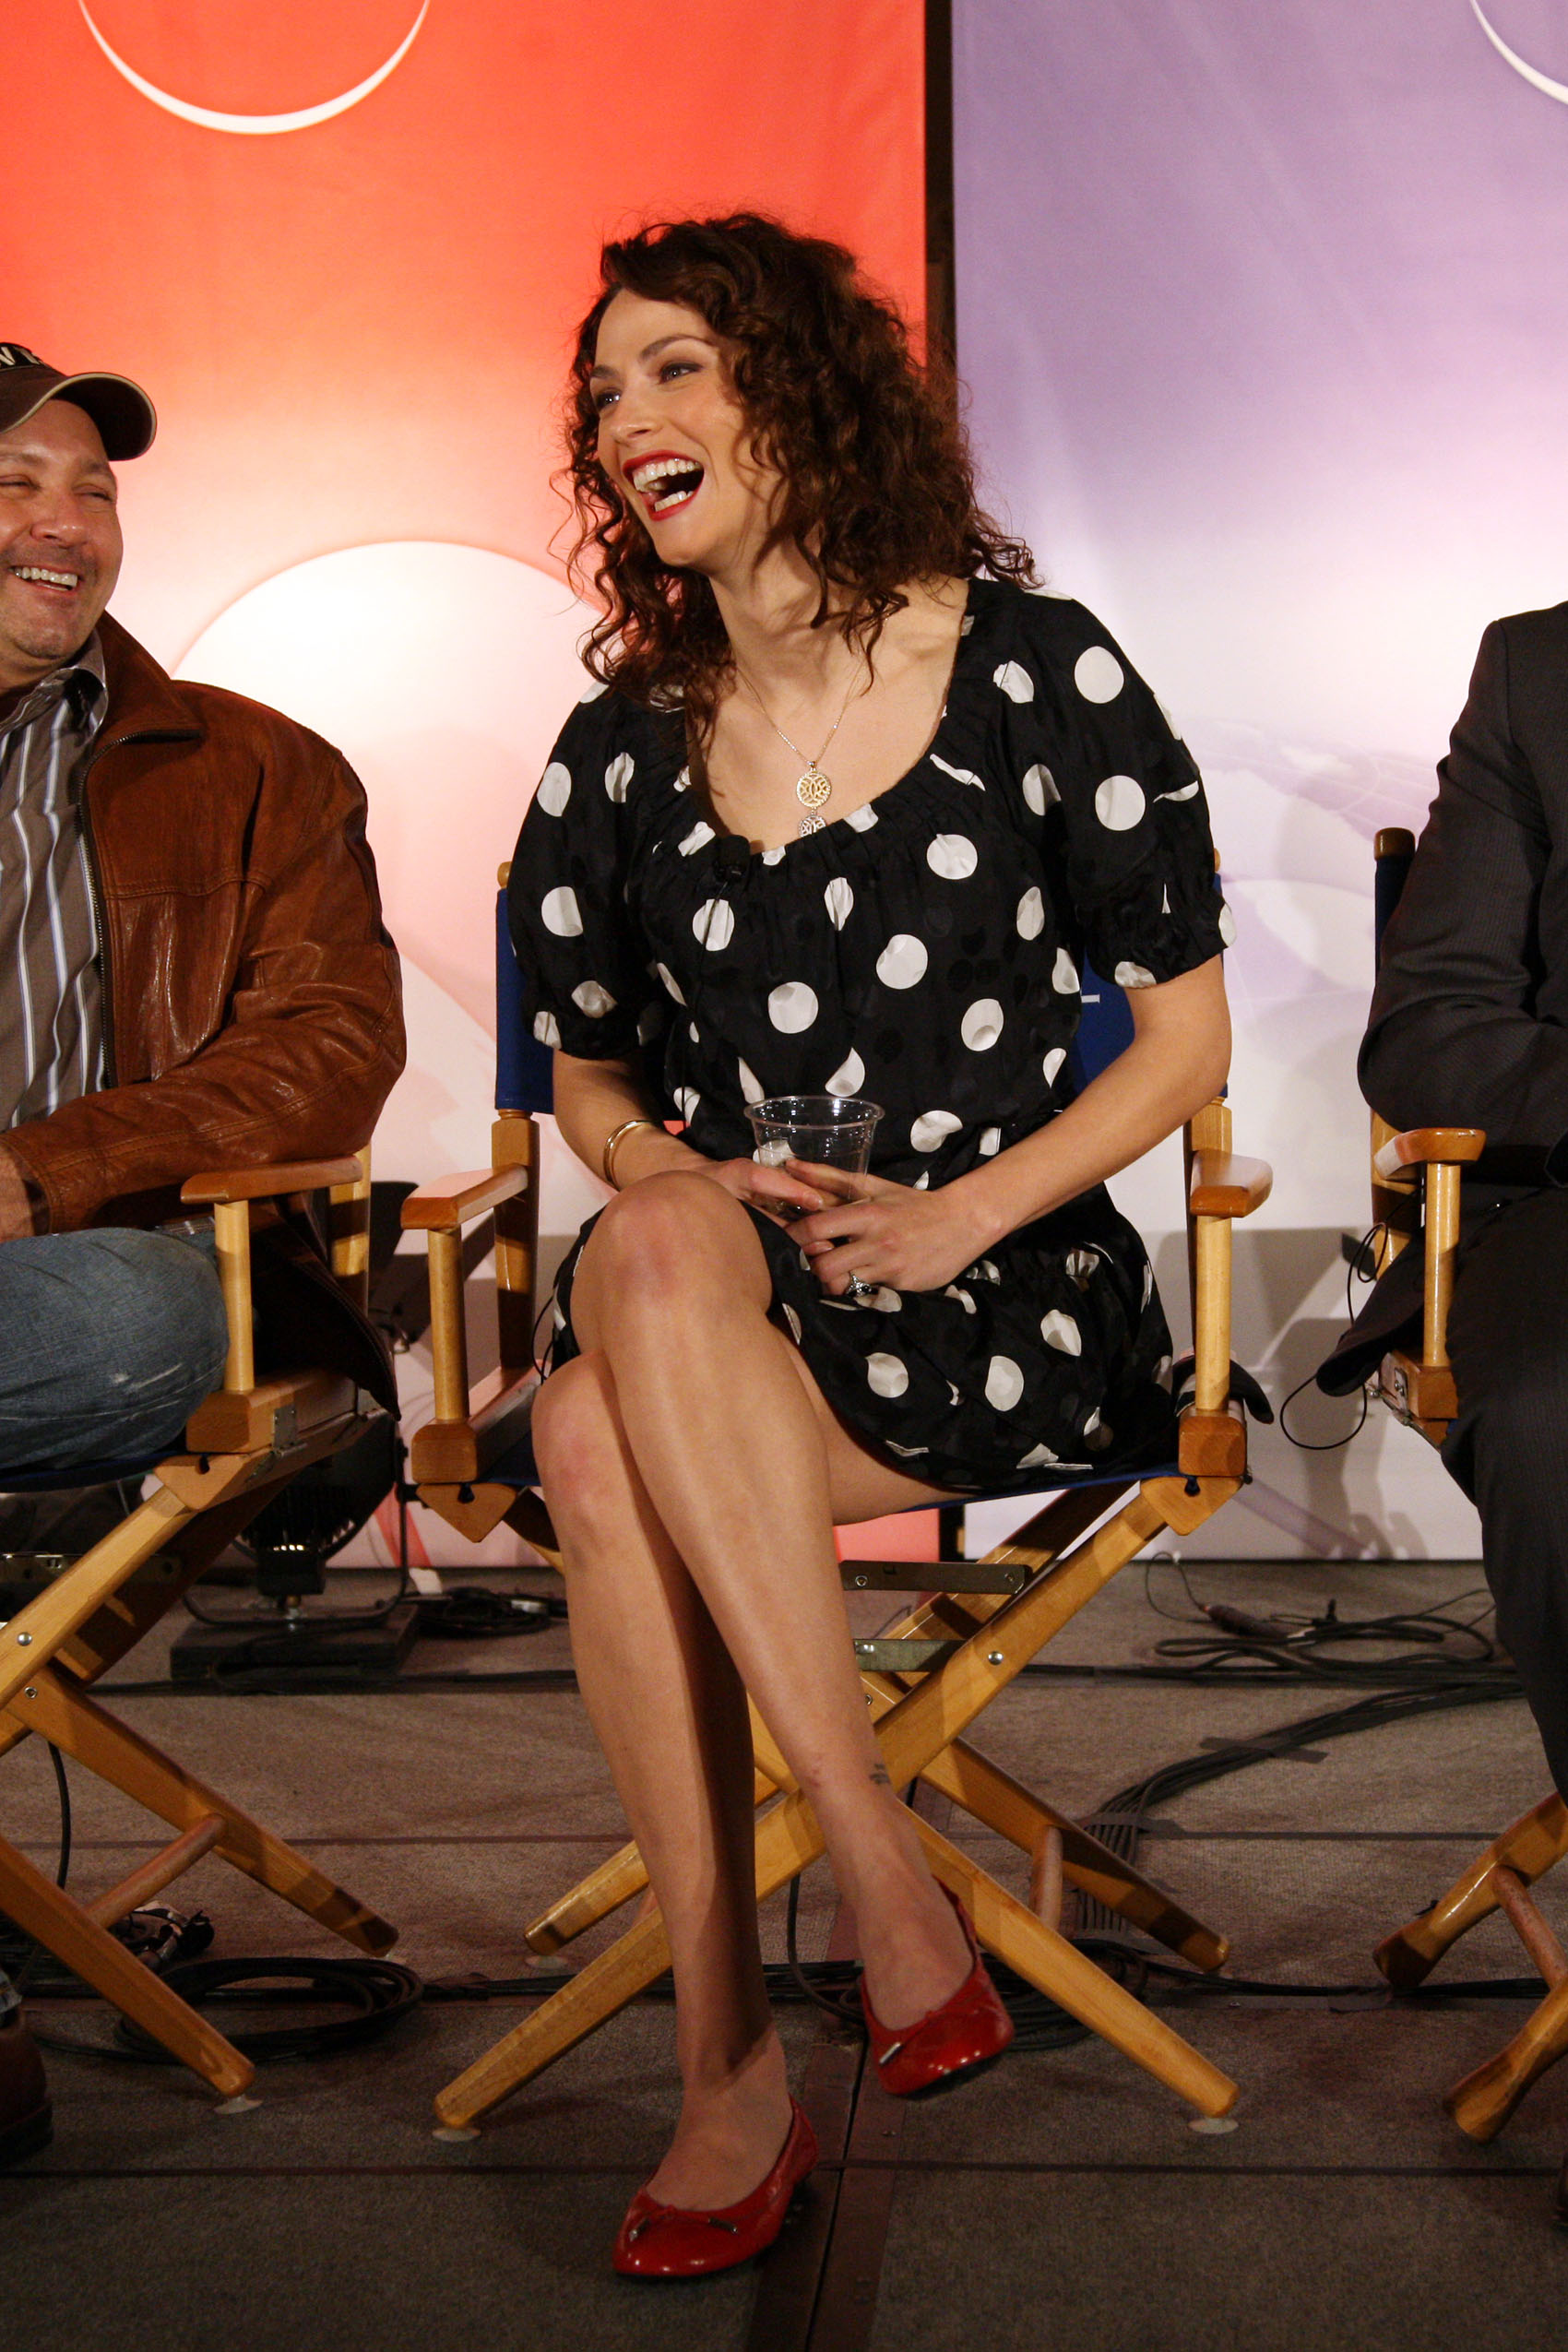 Kelly Warehouse Joanne Kelly Images Joanne Kelly Warehouse 13 Interview